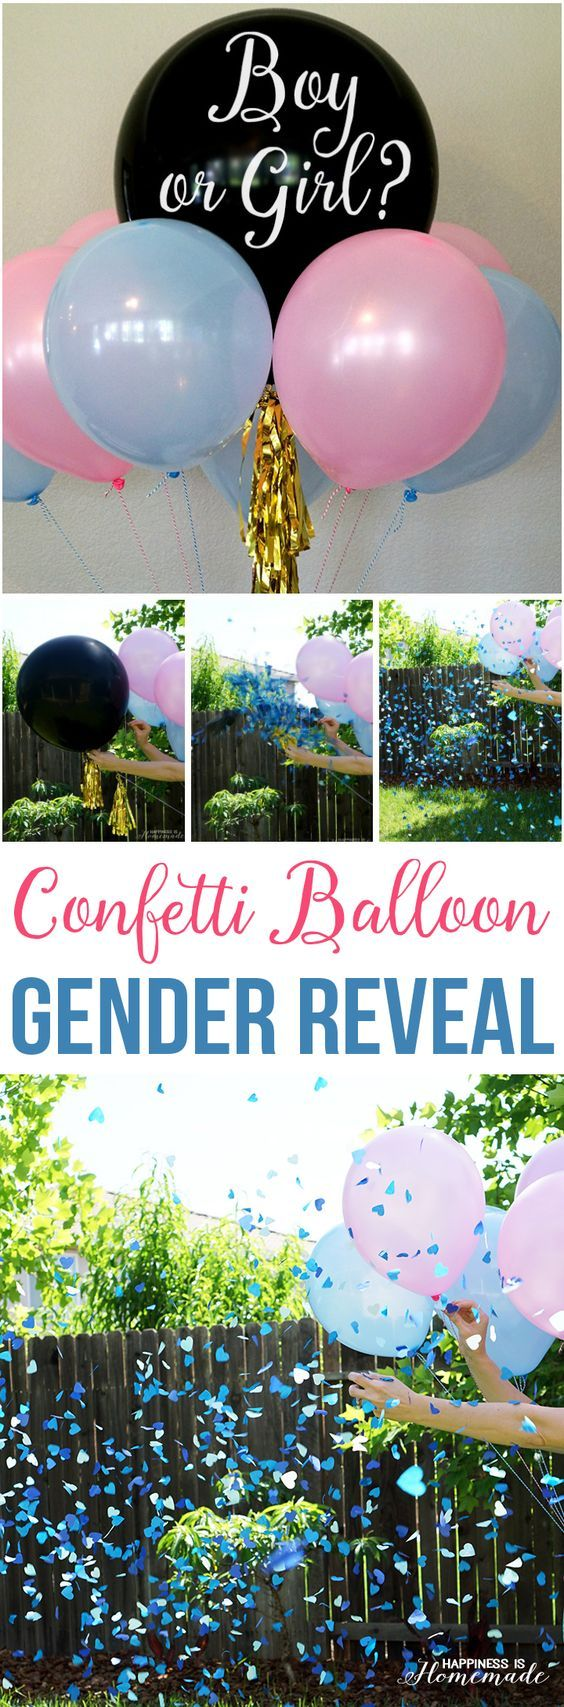 Baby Gender Reveal Party Ideas + Free Printable Invitation - Happiness is Homemade